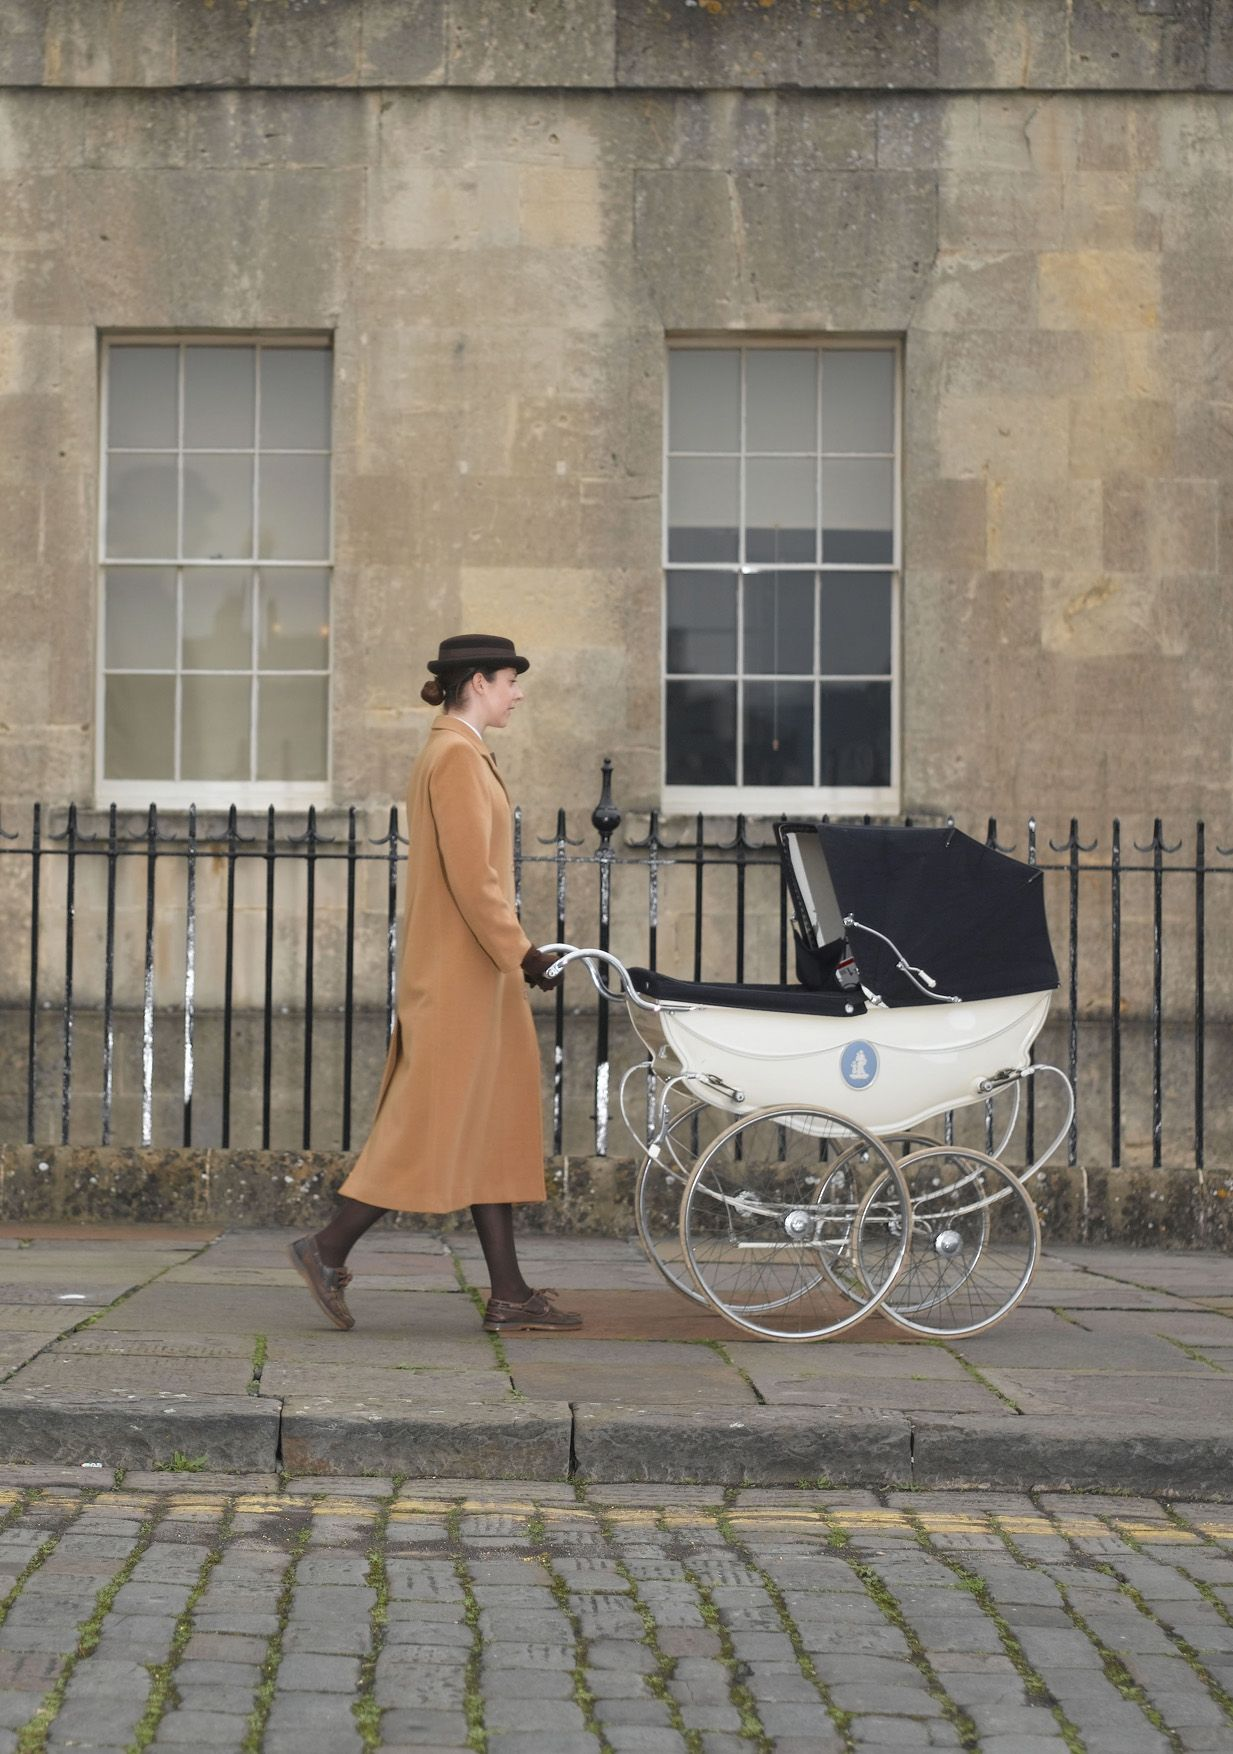 norland studnet with pram